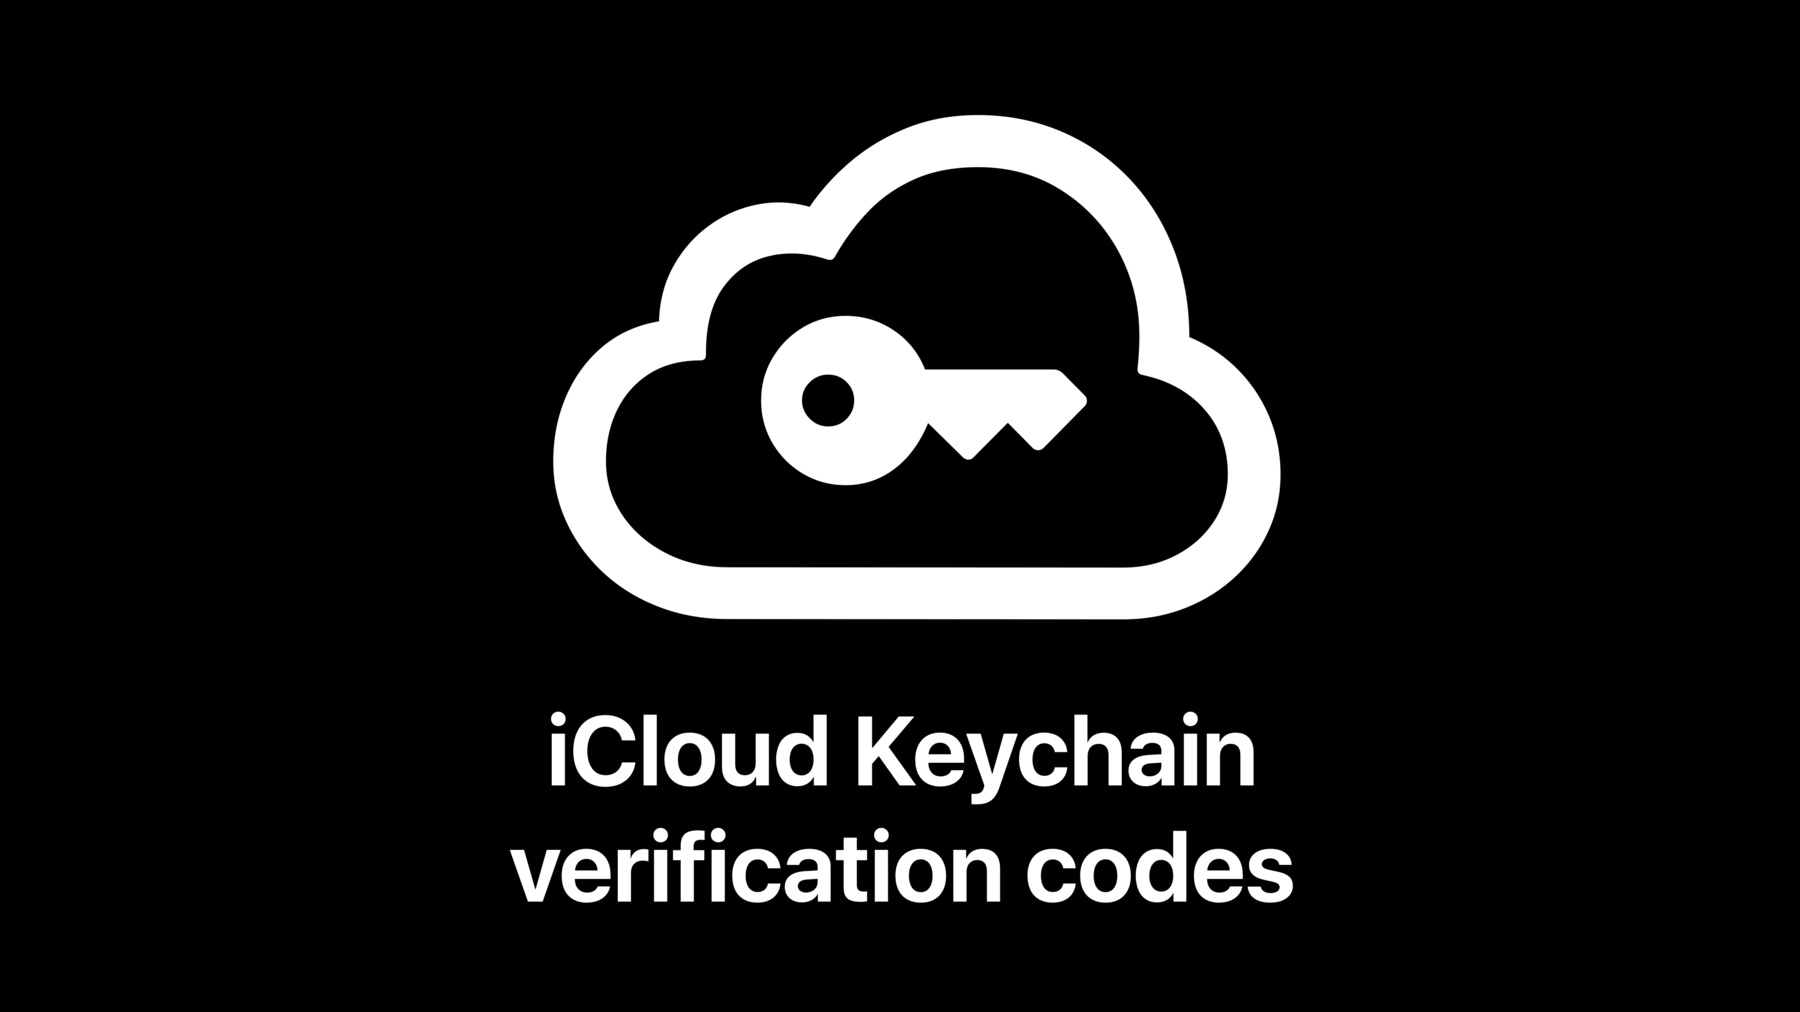 Icon depicting a key inside a cloud for iCloud Keychain verification codes